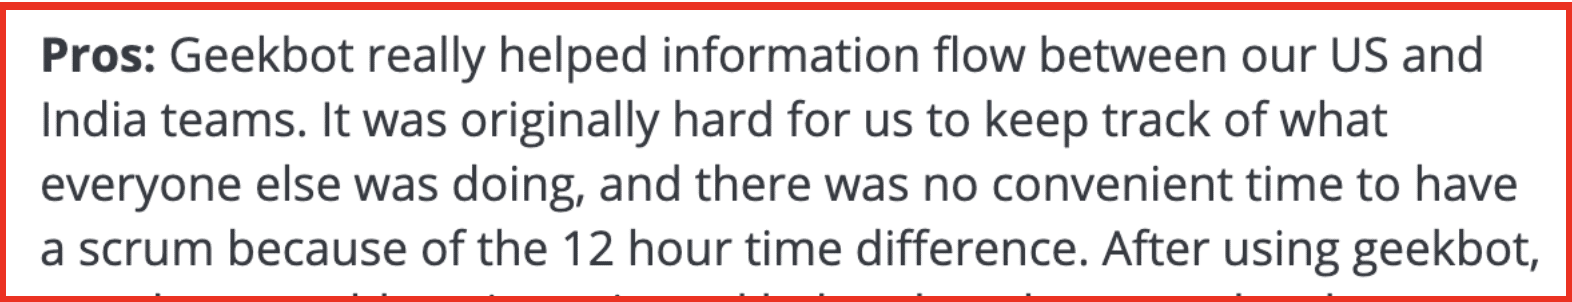 Pros: Geekbot really helped information flow between our US and India teams. It was originally hard for us to keep track of what everyone else was doing, and there was no convenient time to have a scrum because of the 12 hour time difference.